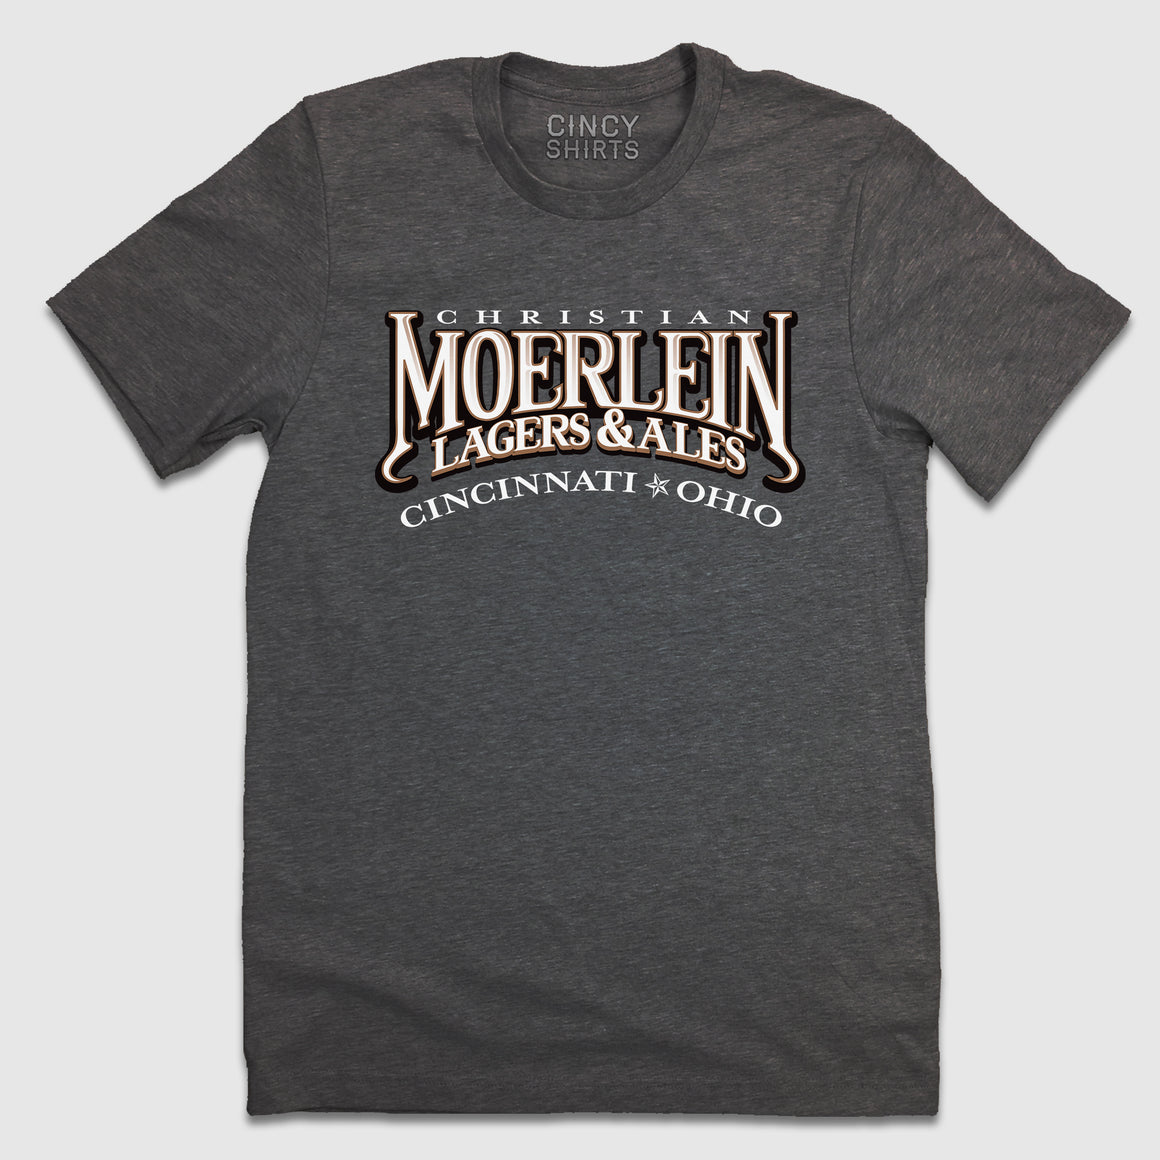 Moerlein Lagers & Ales - Unisex T-Shirt - Cincy Shirts